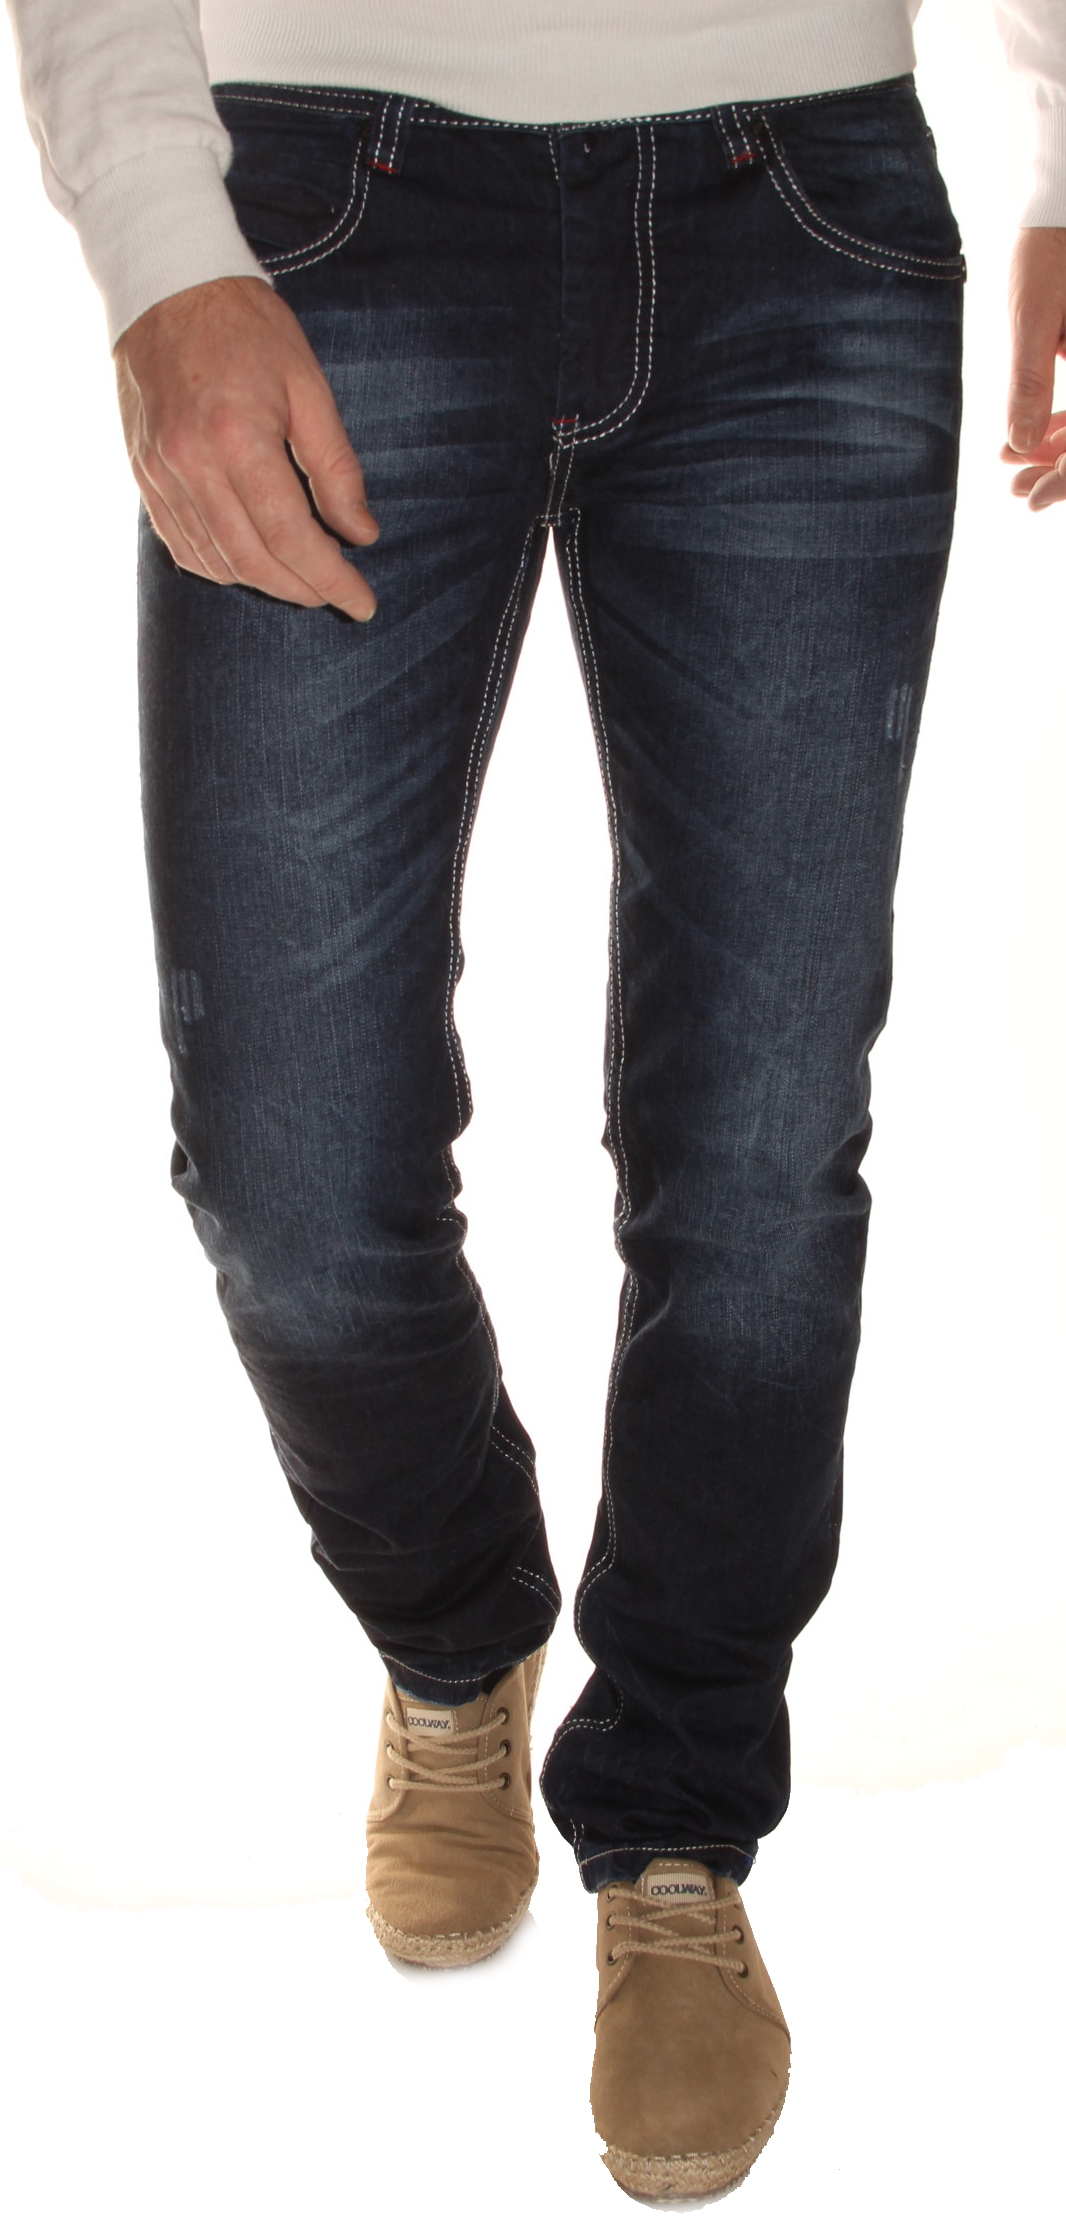 upload/product_display_image/201301/jeansnet_8137_blue_a.jpg